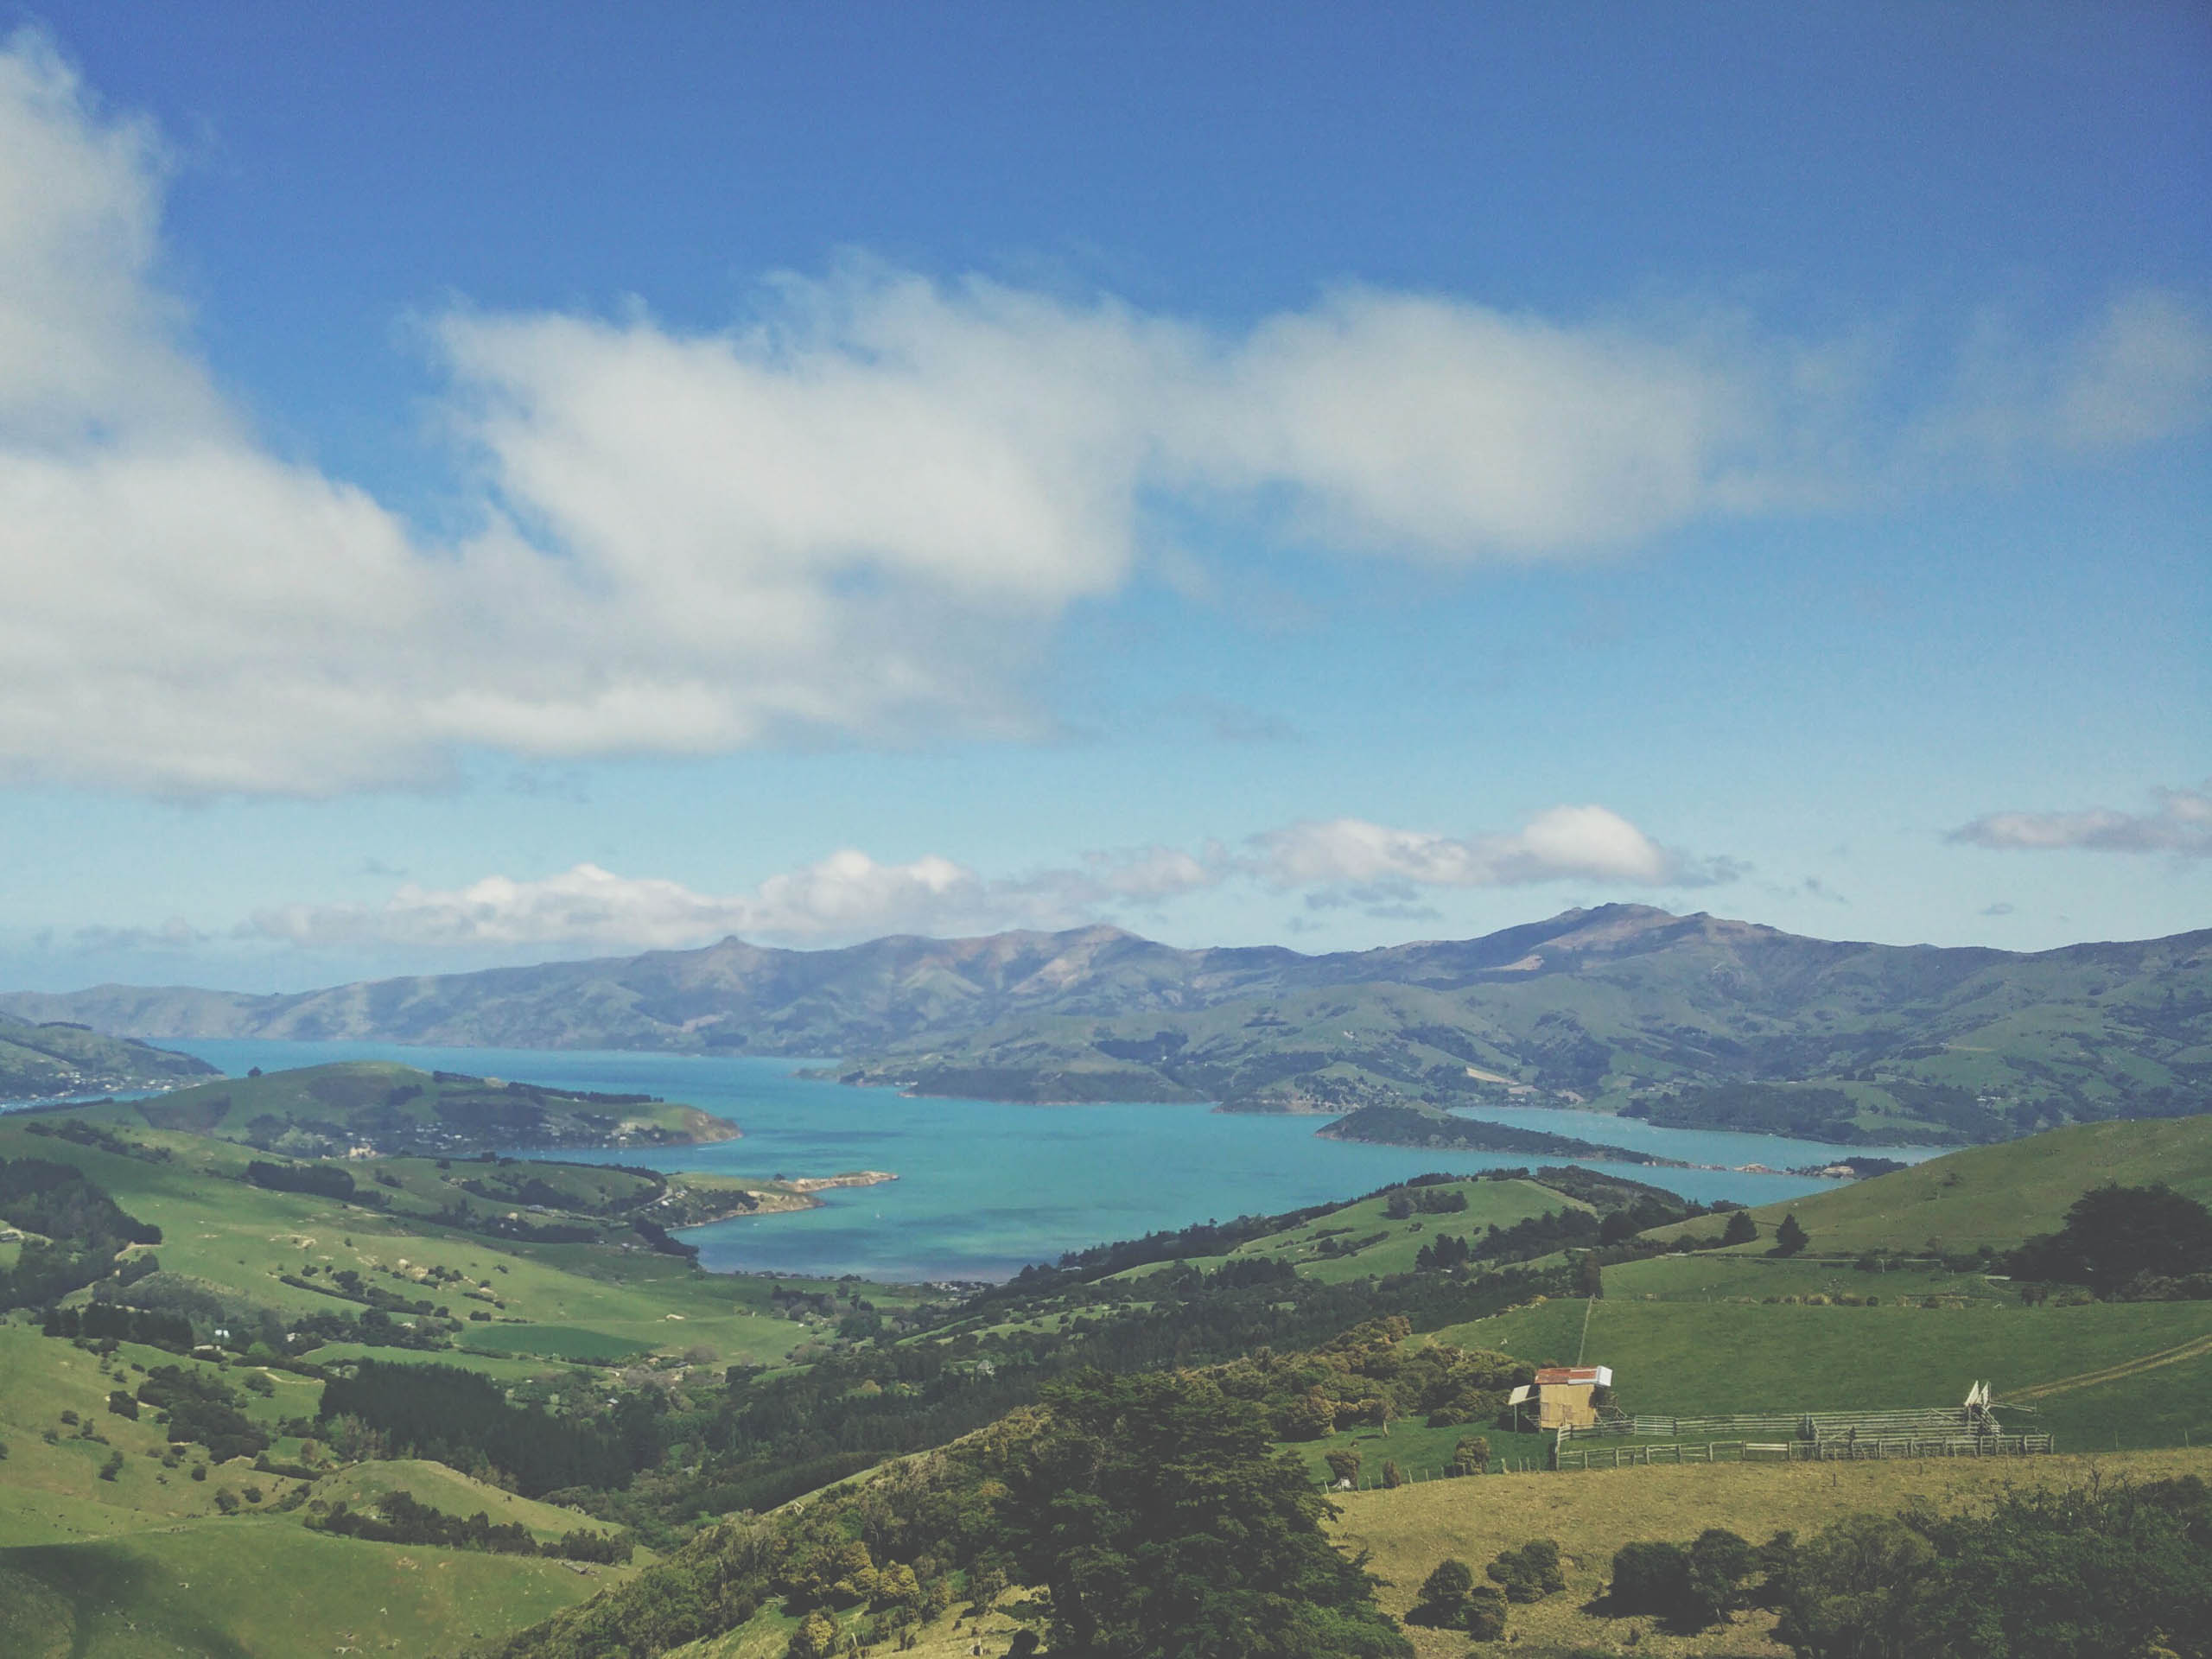 Aerial view of Akaroa. Photo by Edward Manson on Unsplash